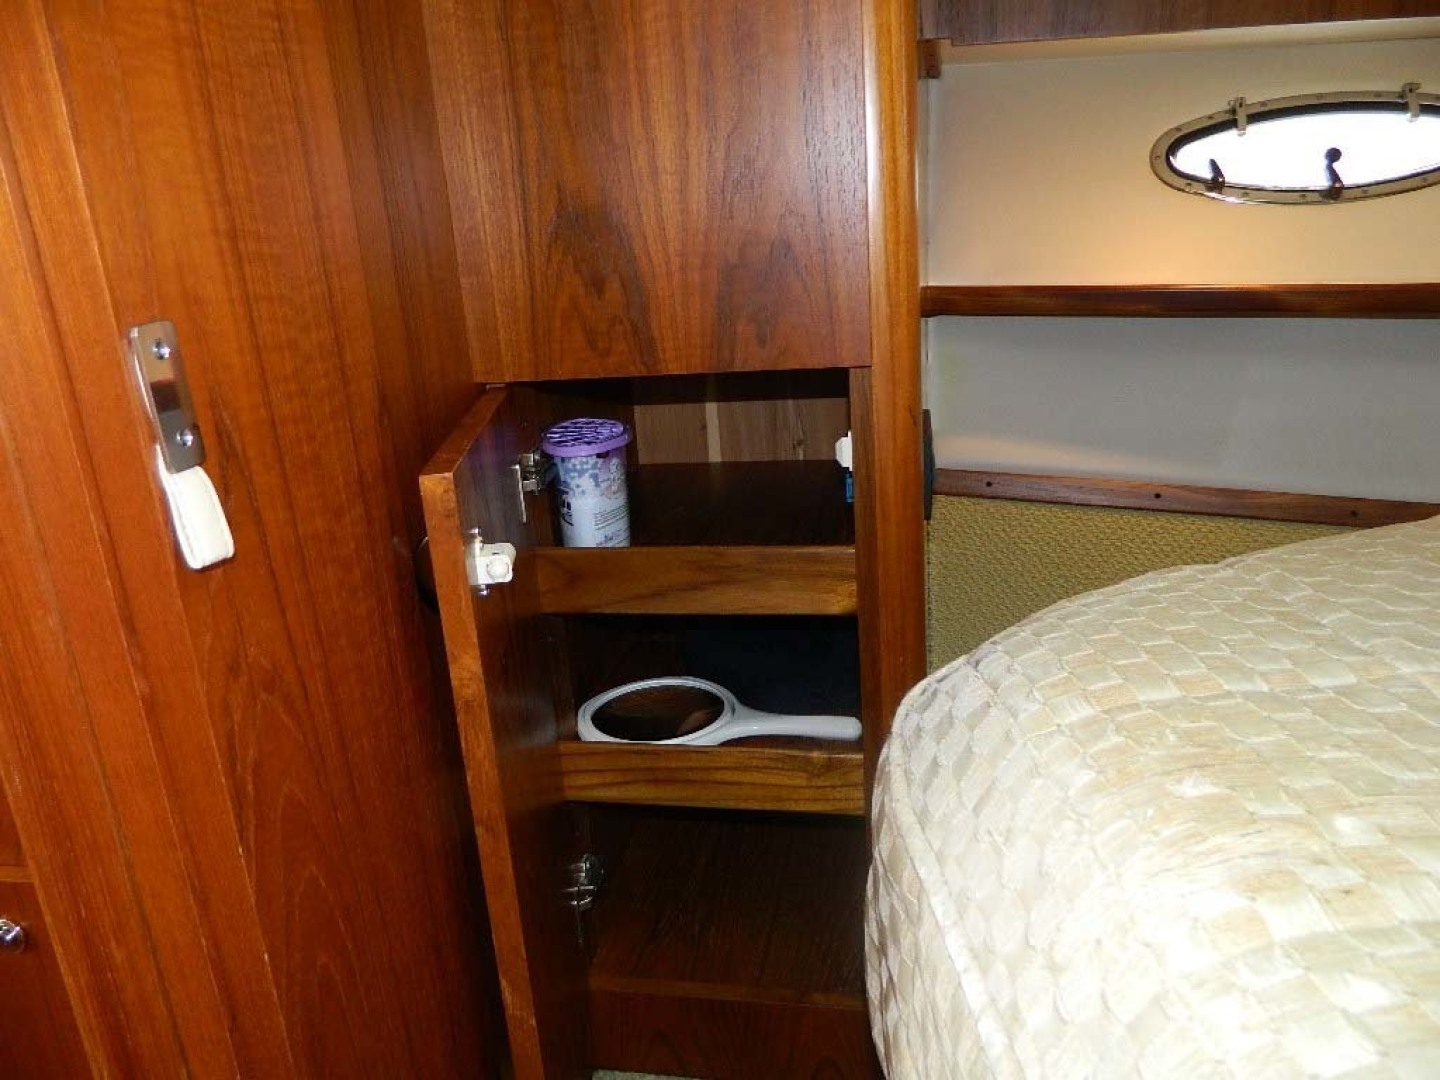 Tiara-Open 2004-Door Knock II Hobe Sound-Florida-United States-Master Stateroom Storage Cabinet-1315551 | Thumbnail